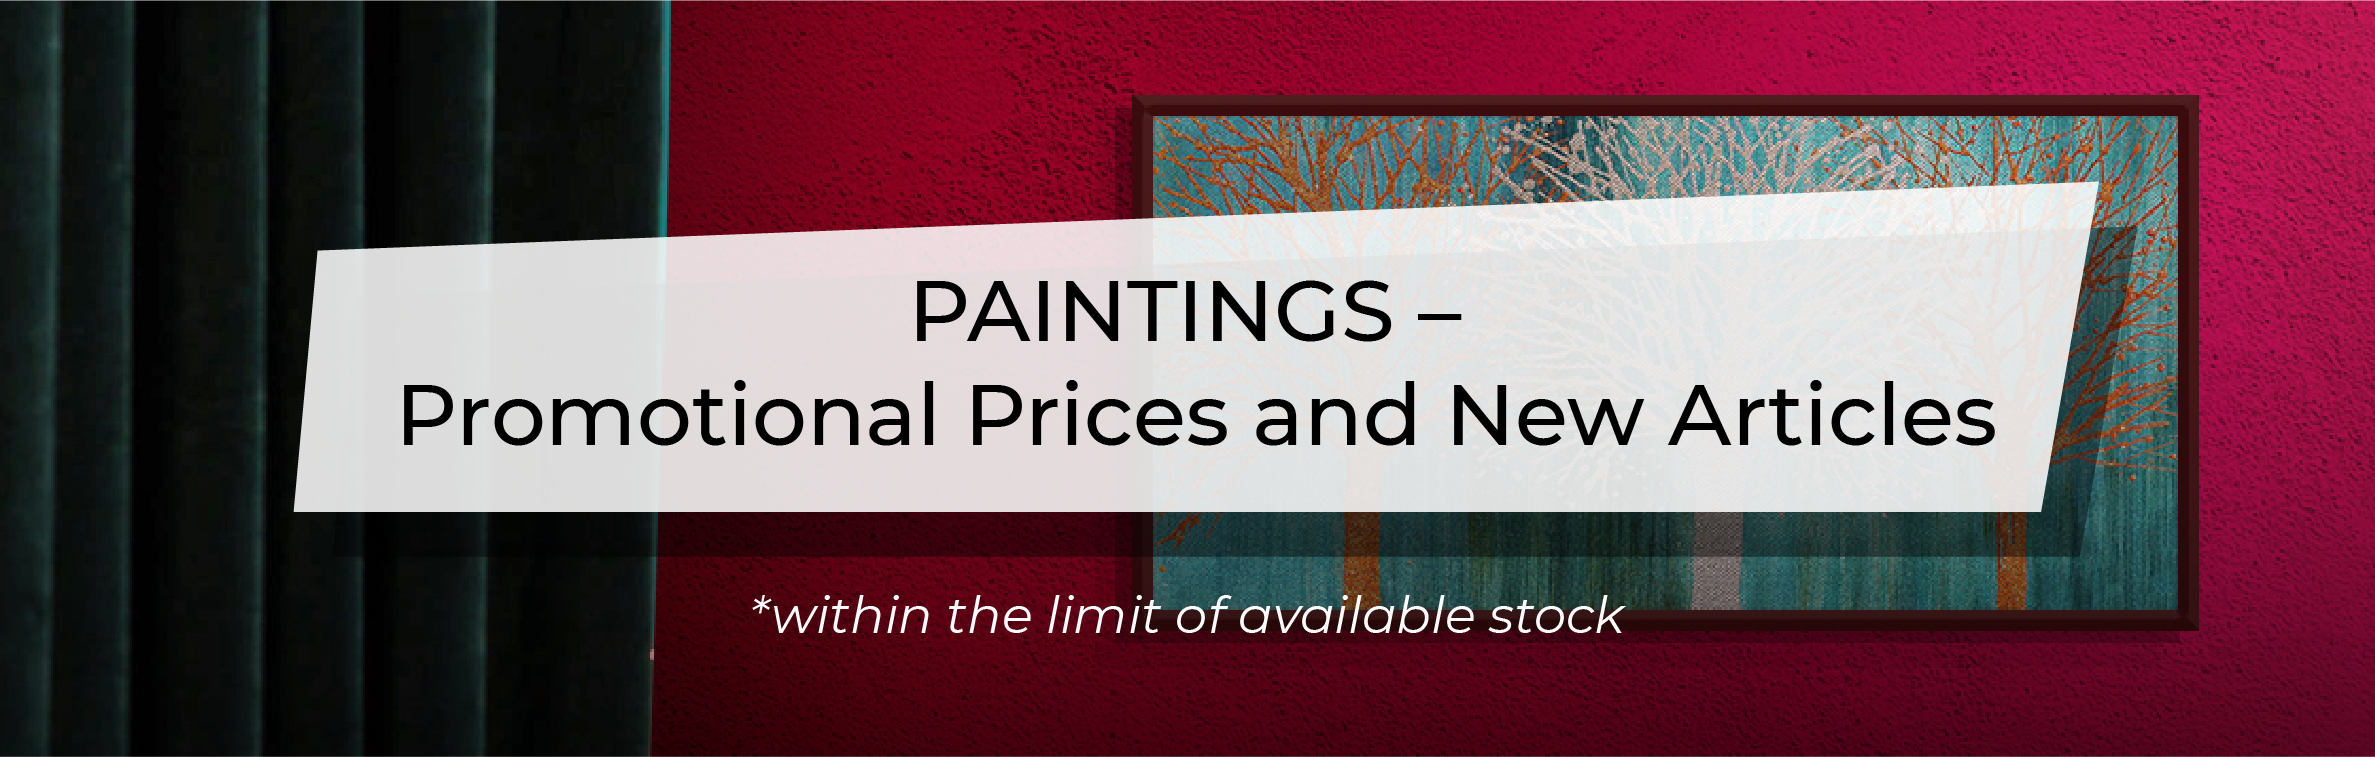 December Promotion - Paintings